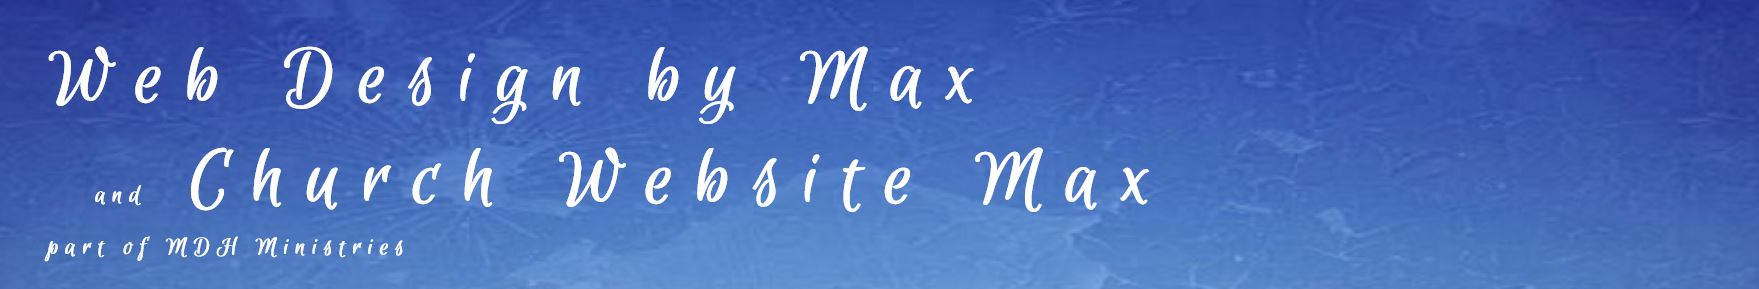 Web Design by Max and Church Website Max,  part of MDH Ministries